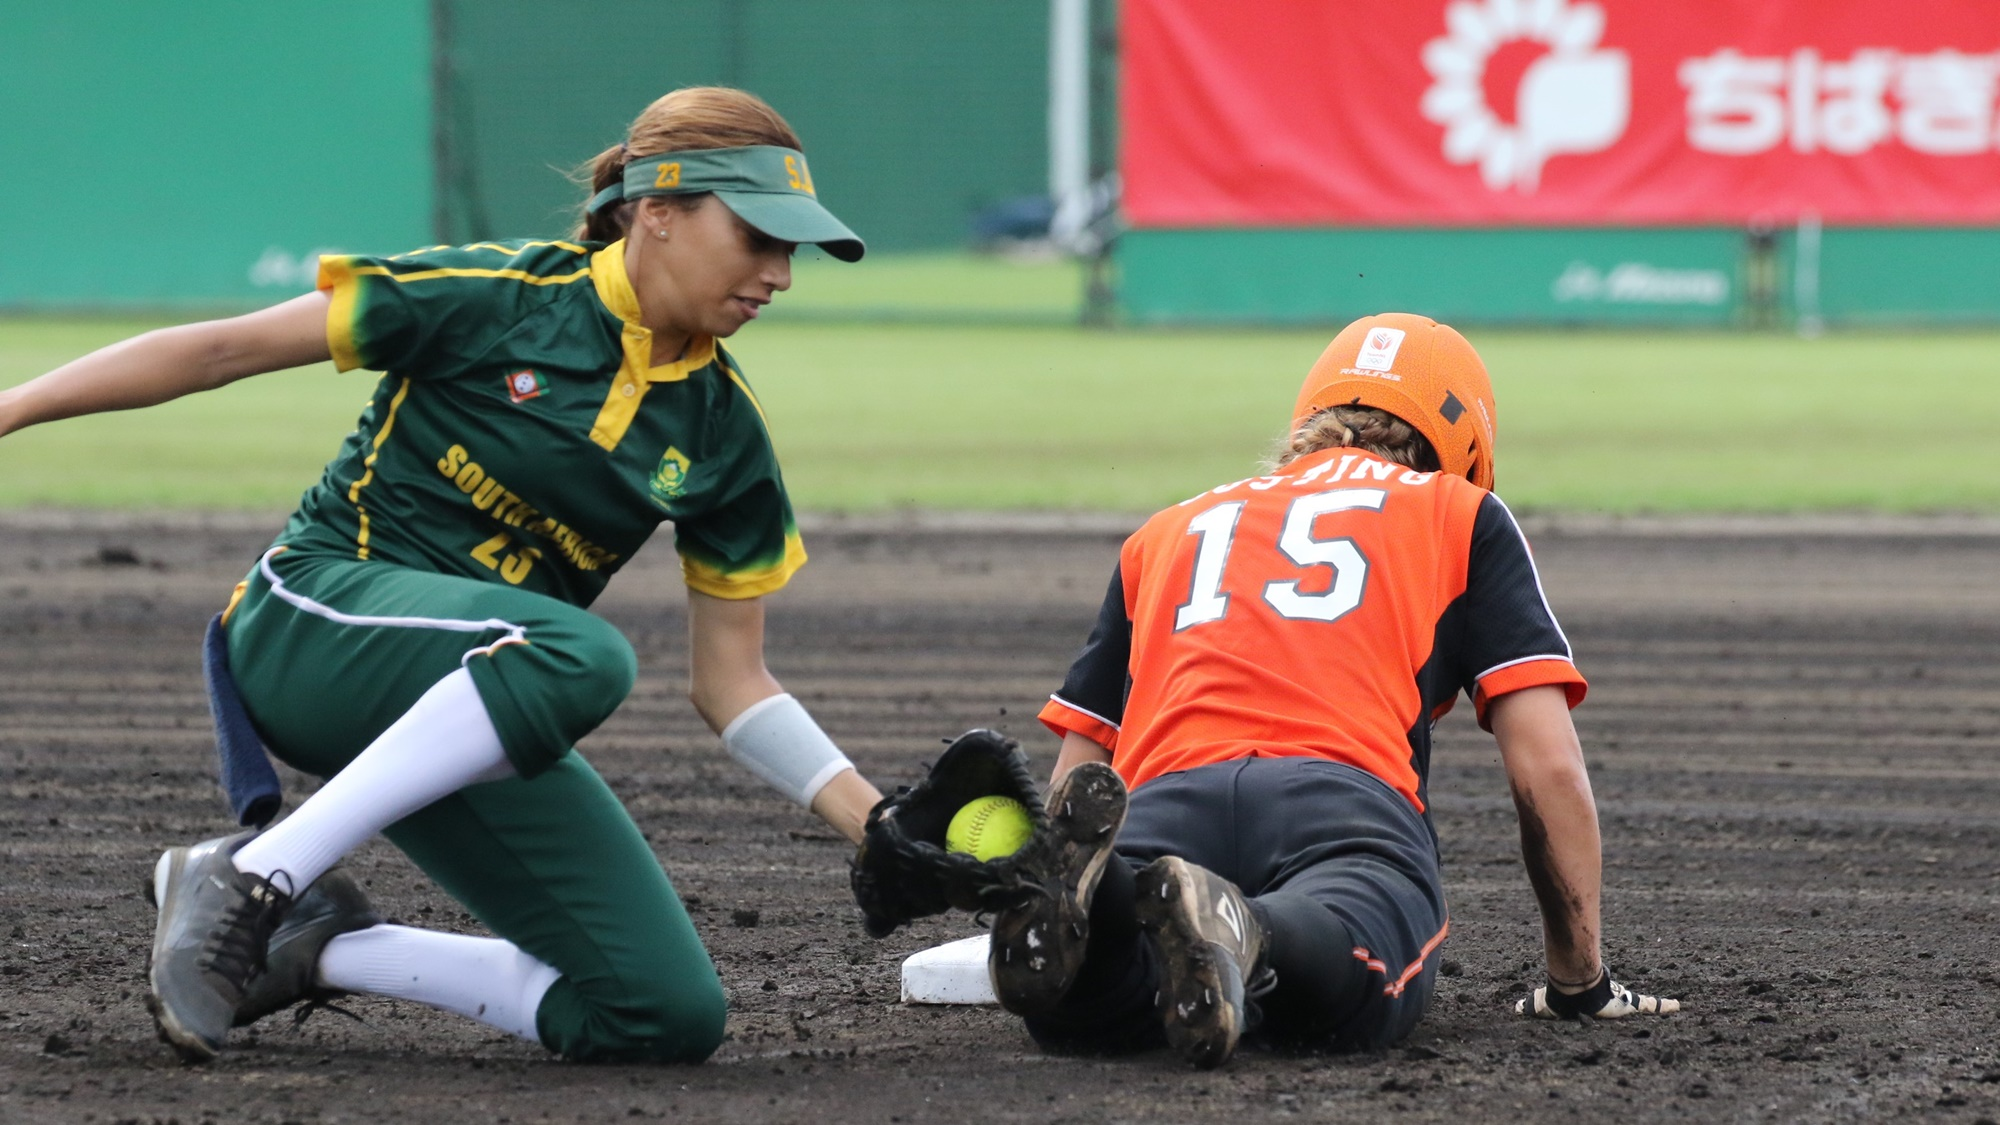 Oosting avoids a tag by Elizabeth Bischoff and reaches second